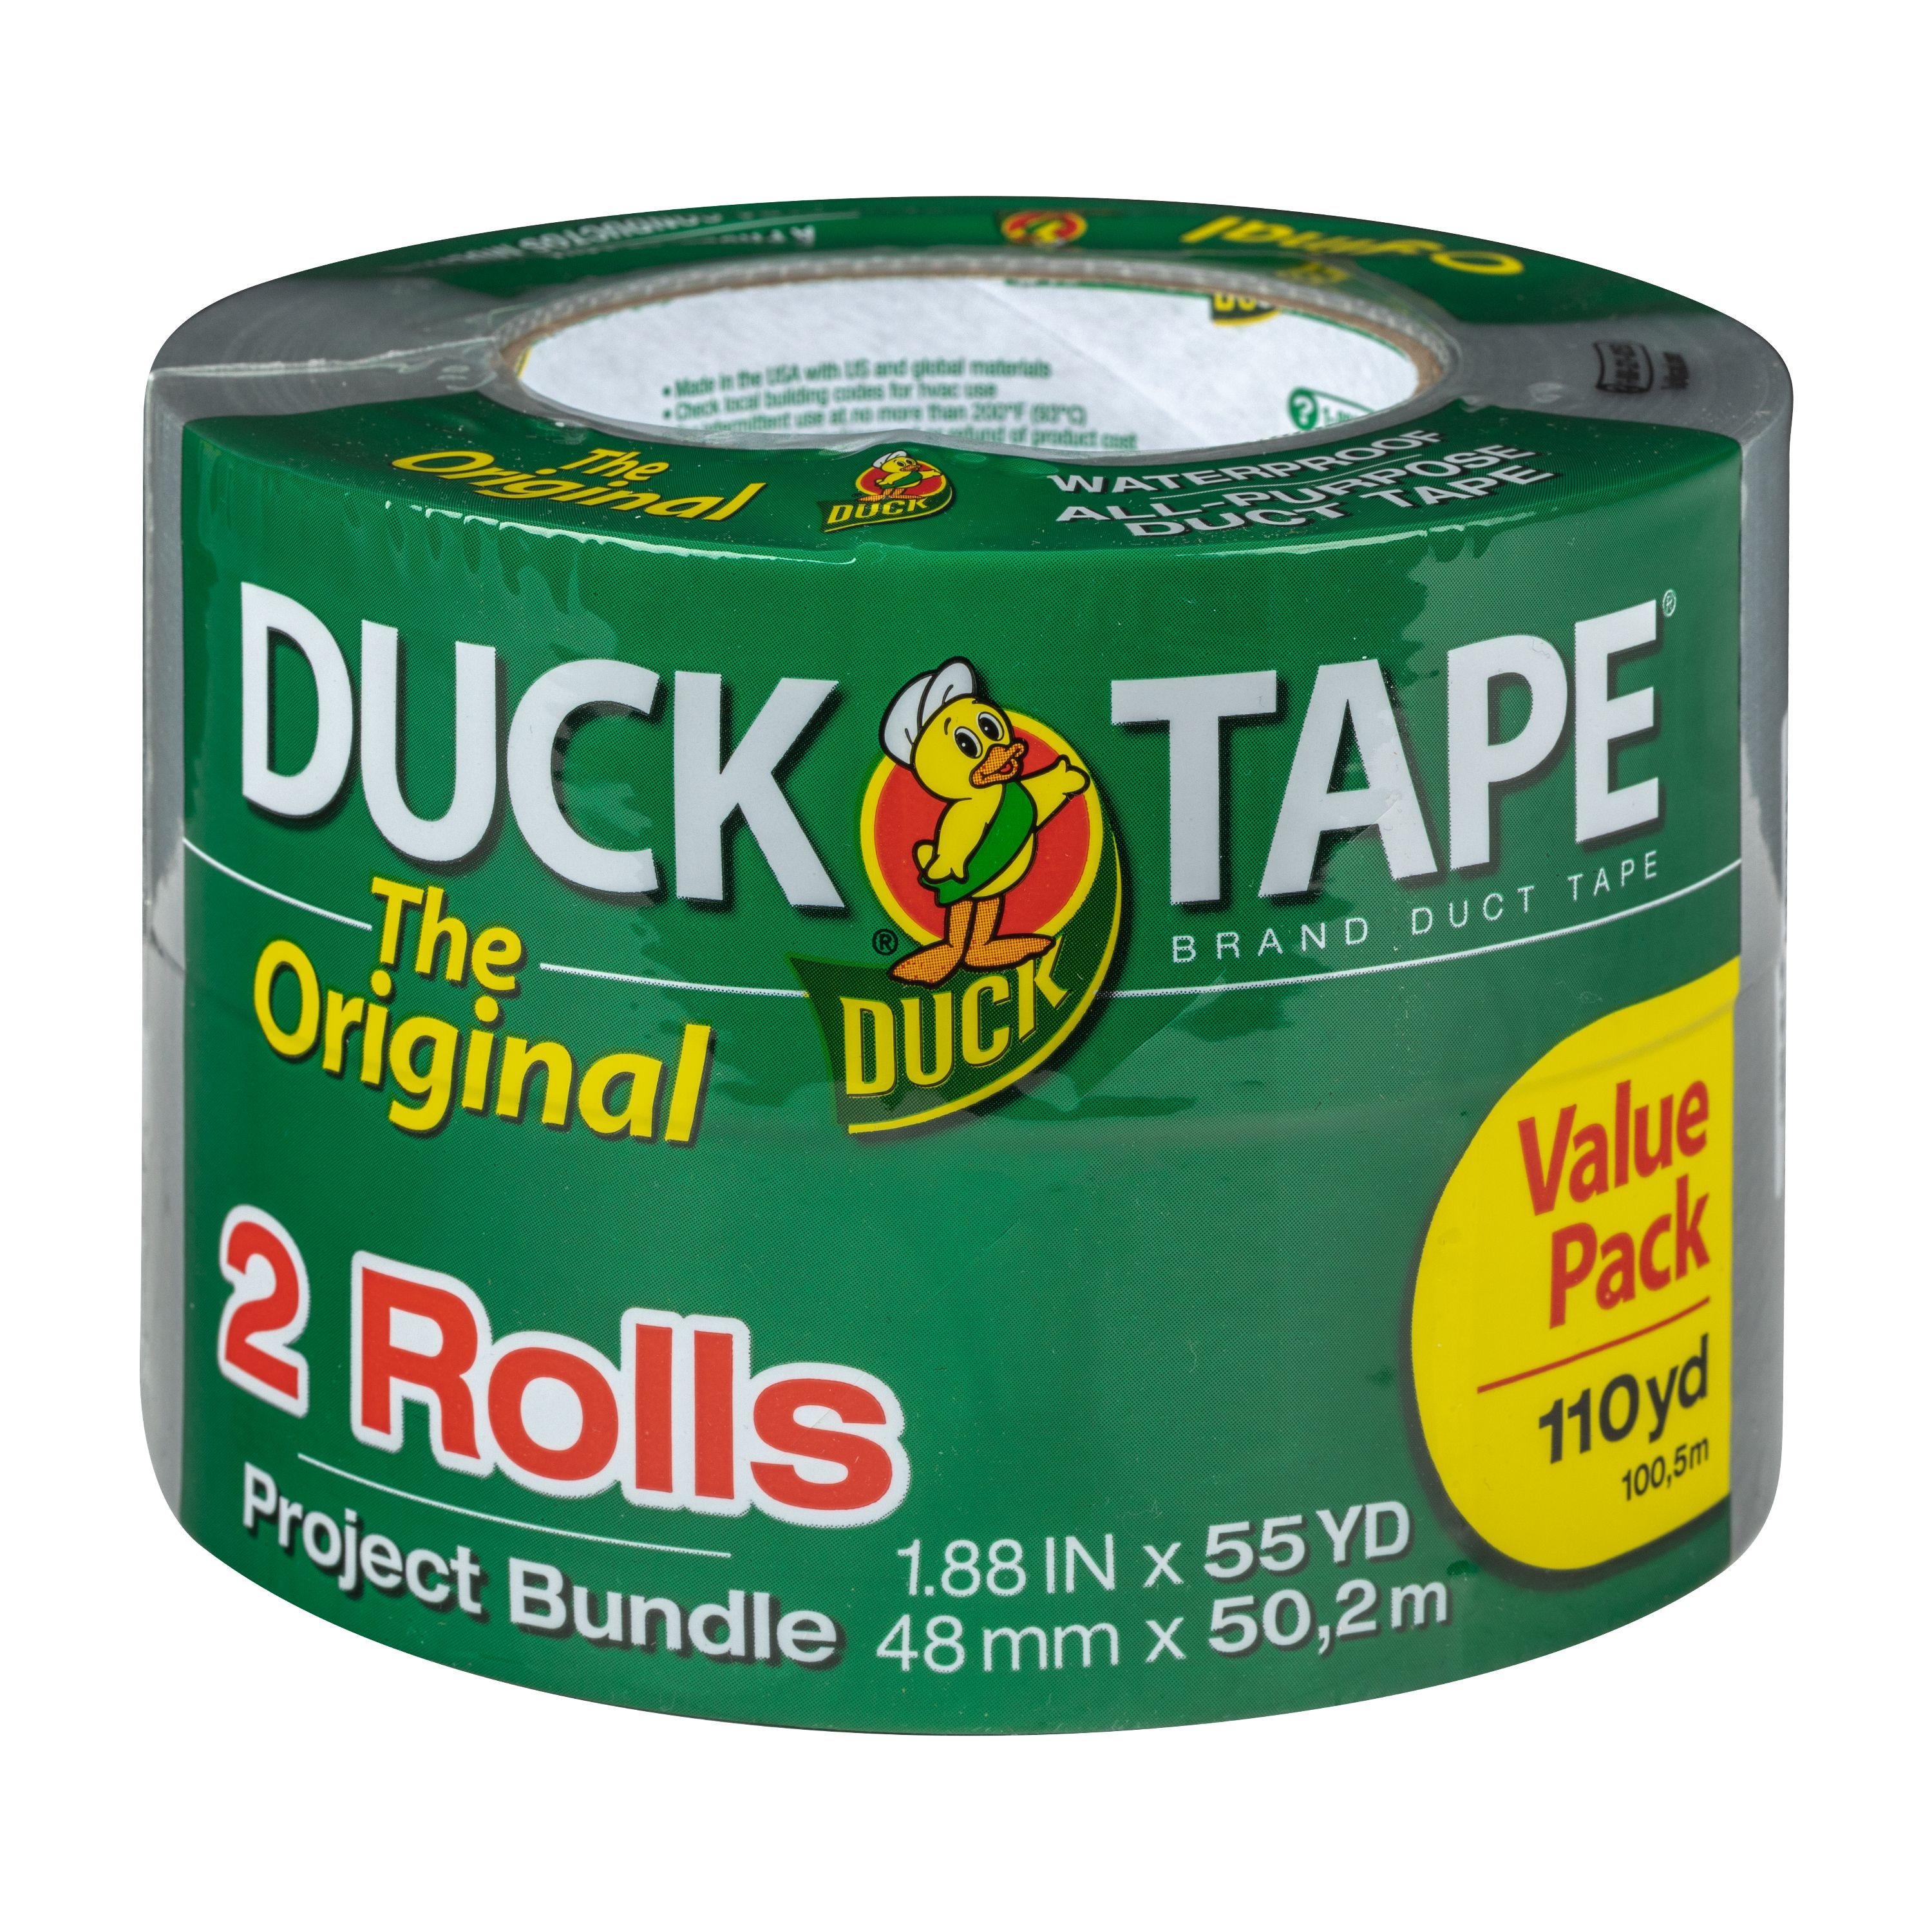 The Original Duck Tape® Brand Duct Tape - Silver, 2 pack, 1.88 in. x 55 yd.